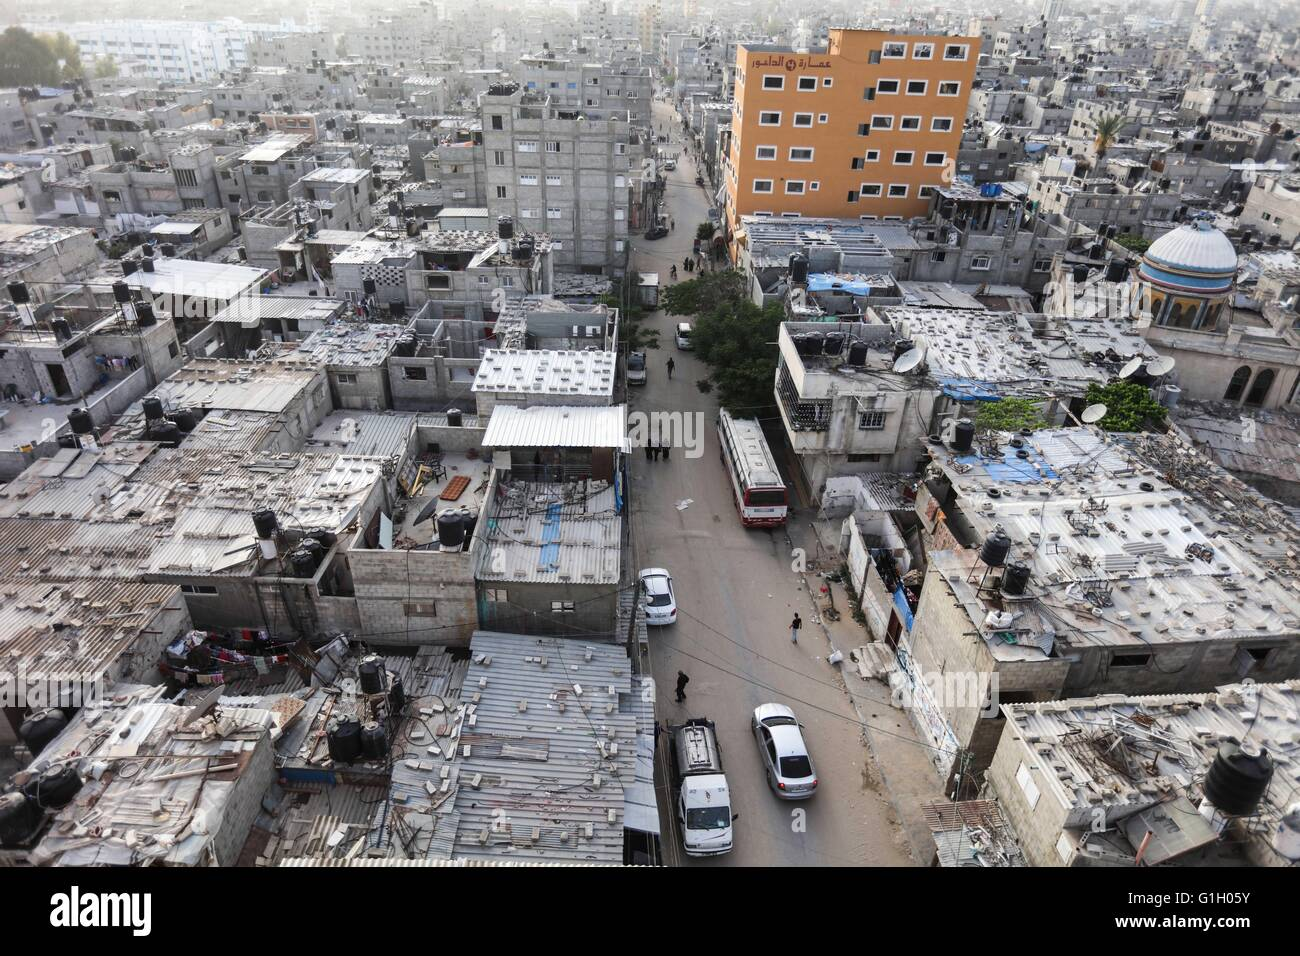 Palestinian Refugee Camp In The Gaza Strip Stock Photos